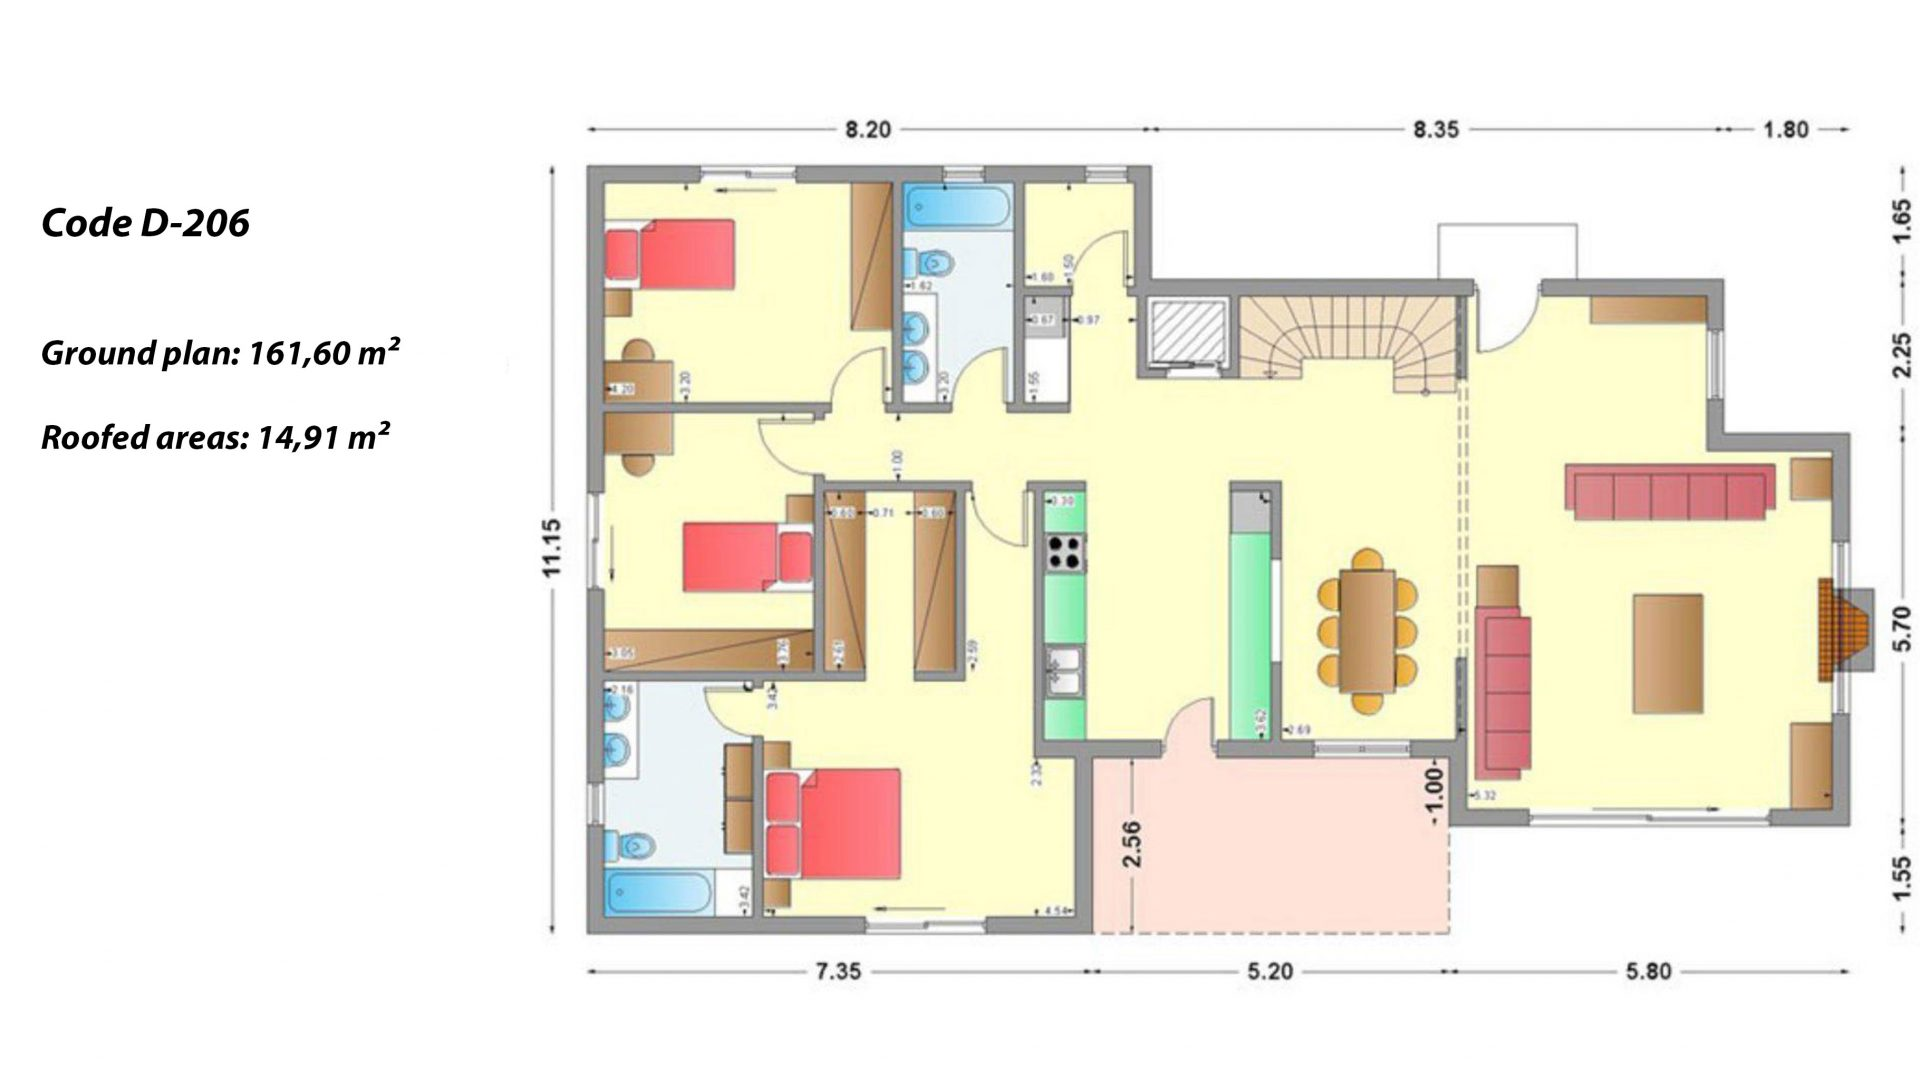 2-story house D-206, total surface of 206,30 m² ,roofed areas 58.91 m²,balconies 93.55 m²